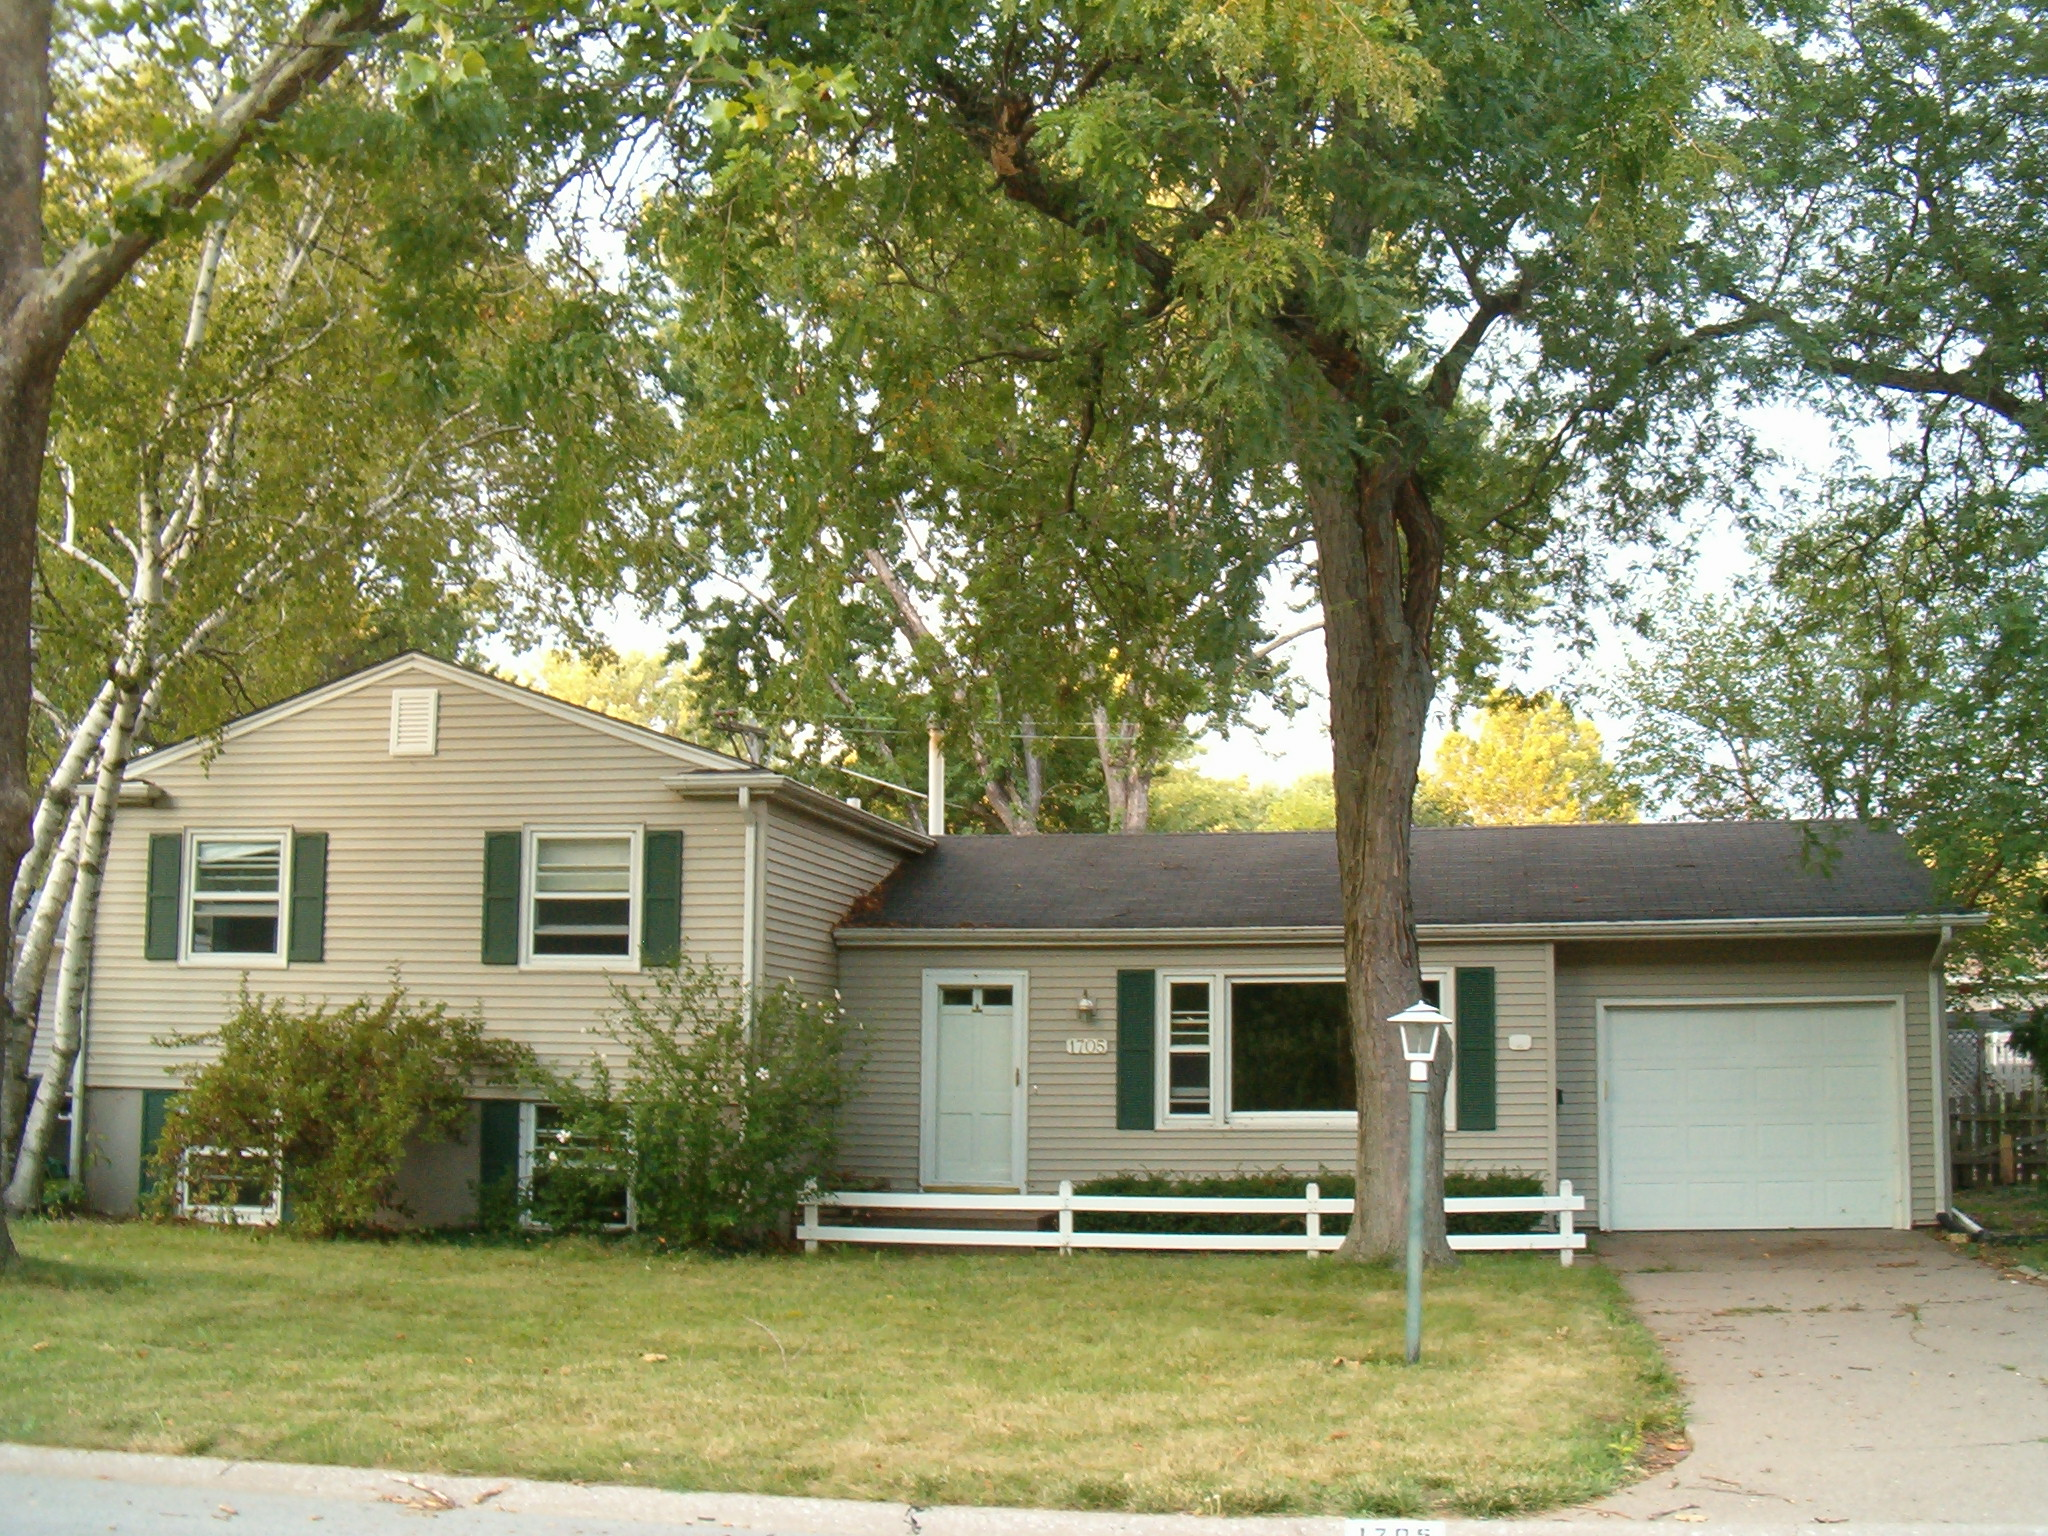 Rent-to-Own Homes | Bettendorf & Davenport, IA | First